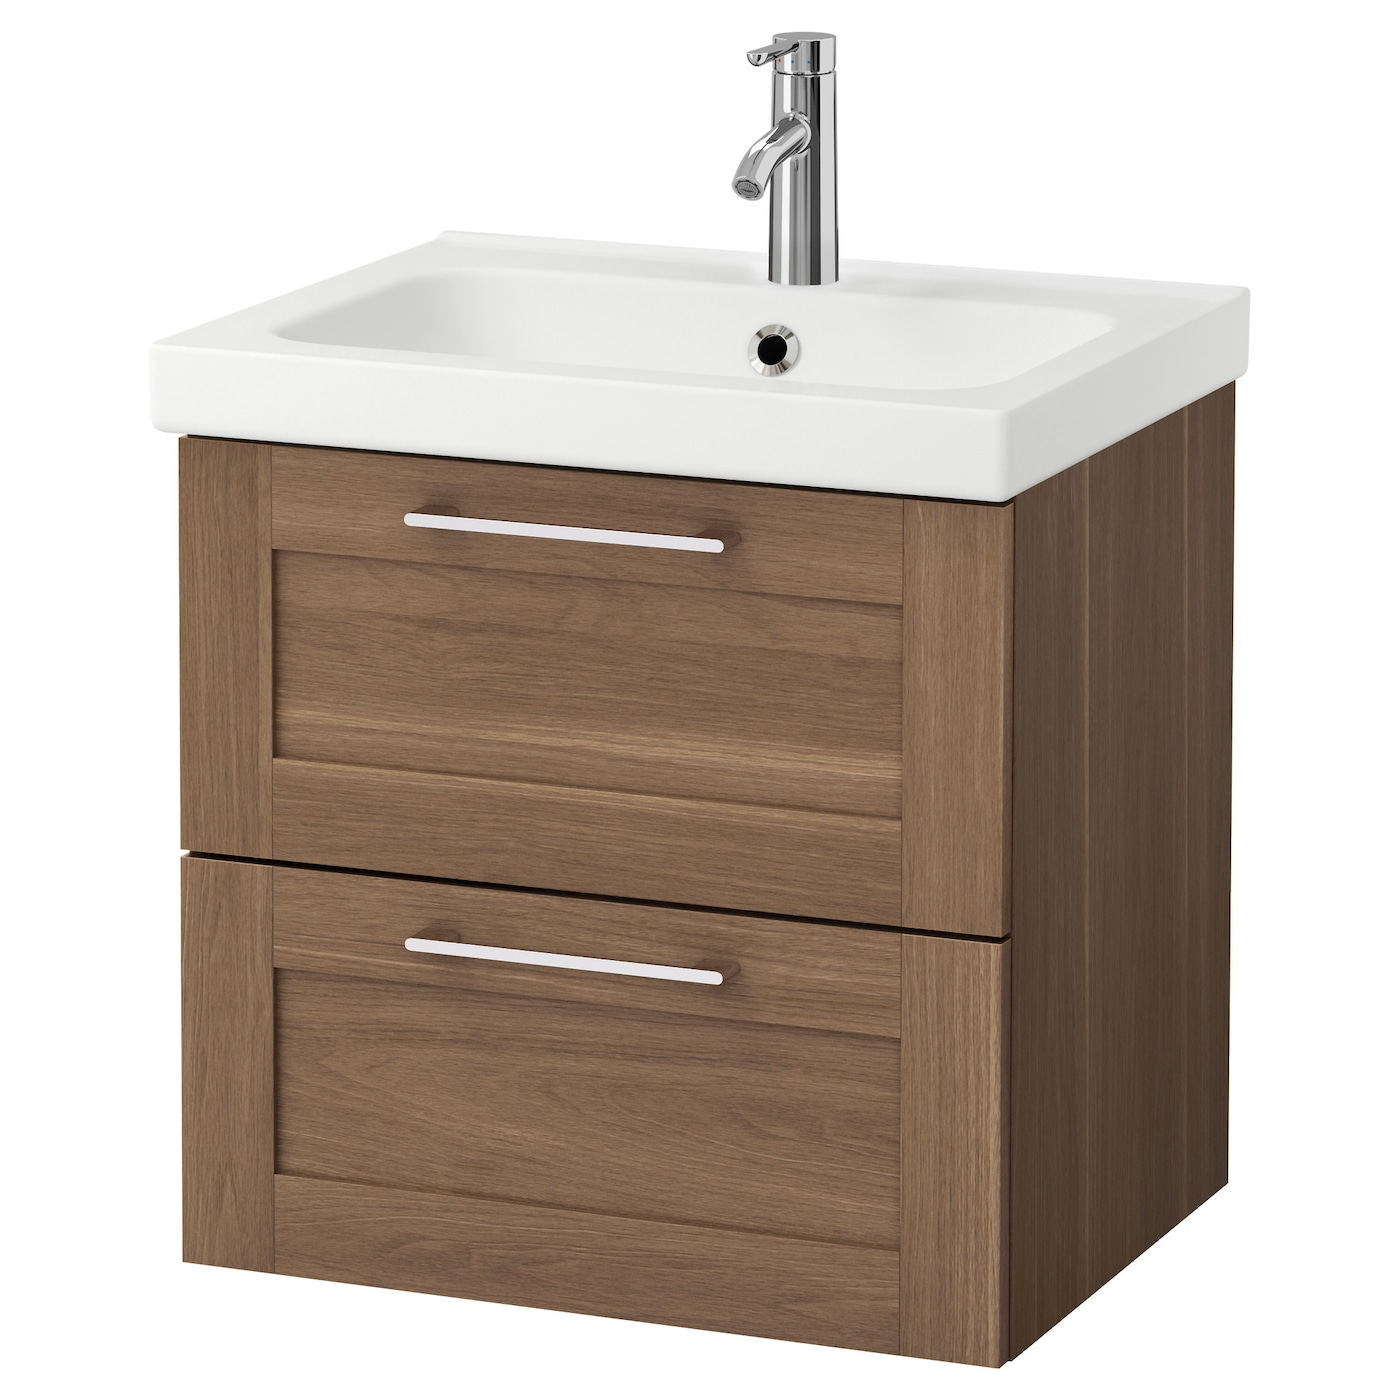 Odensvik godmorgon meuble lavabo 2tir motif noyer 60x49x64 for Lavabo plus meuble